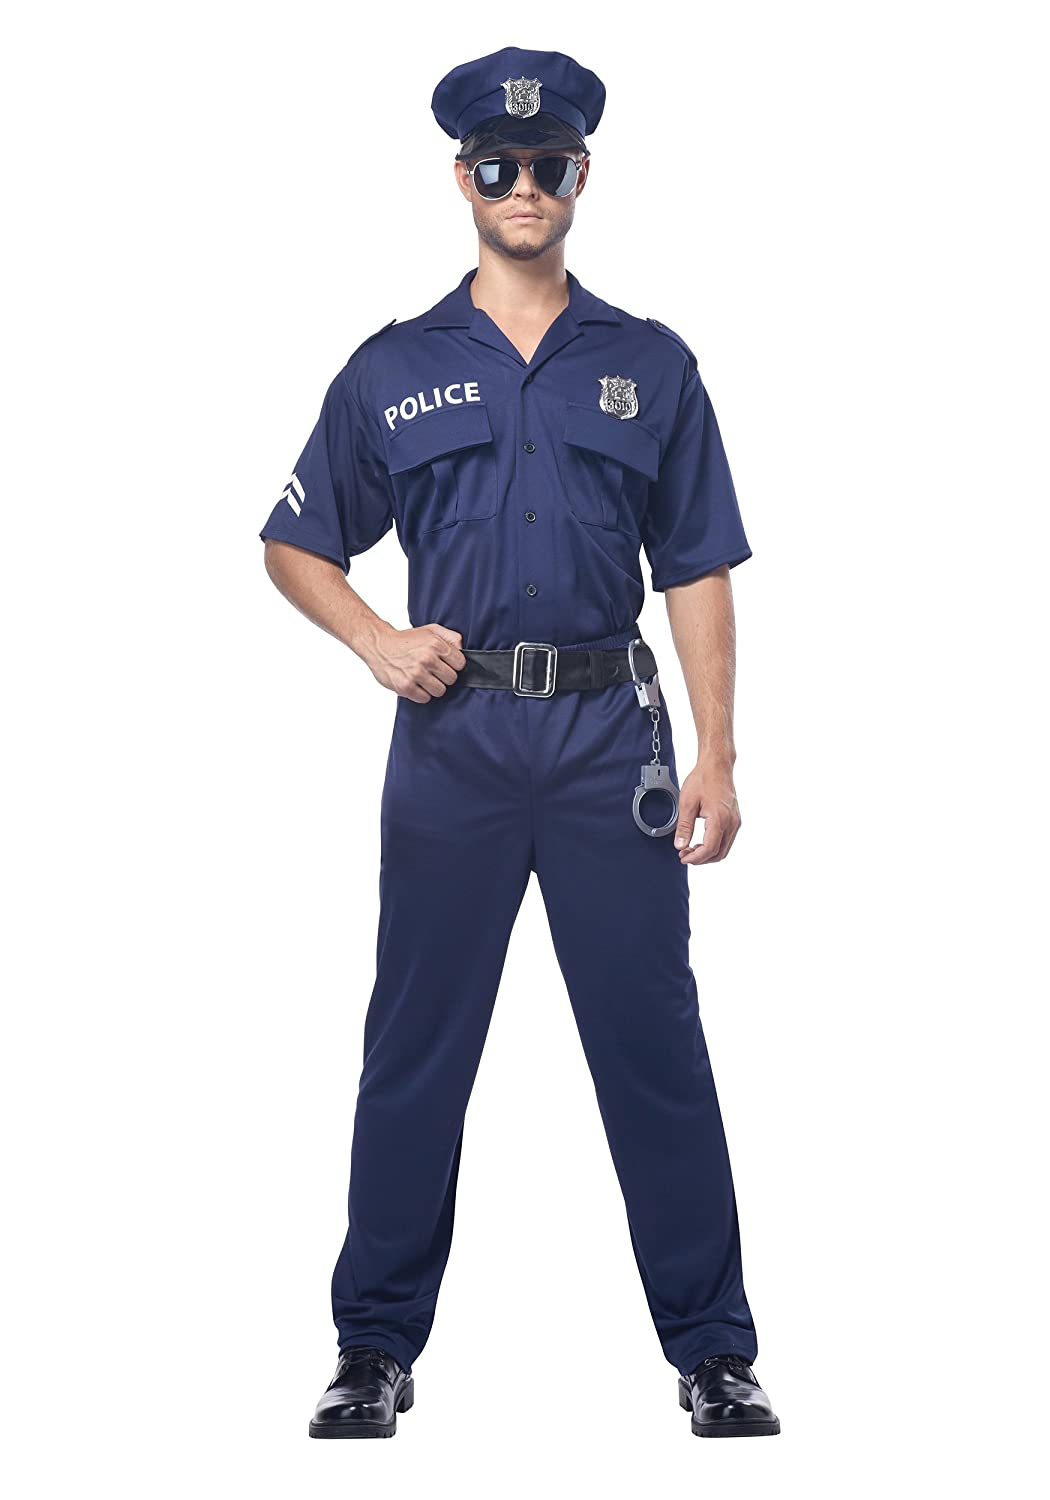 0cc2bccf622 Amazon.com: Police Officer Costume Adult - Size Medium: Clothing